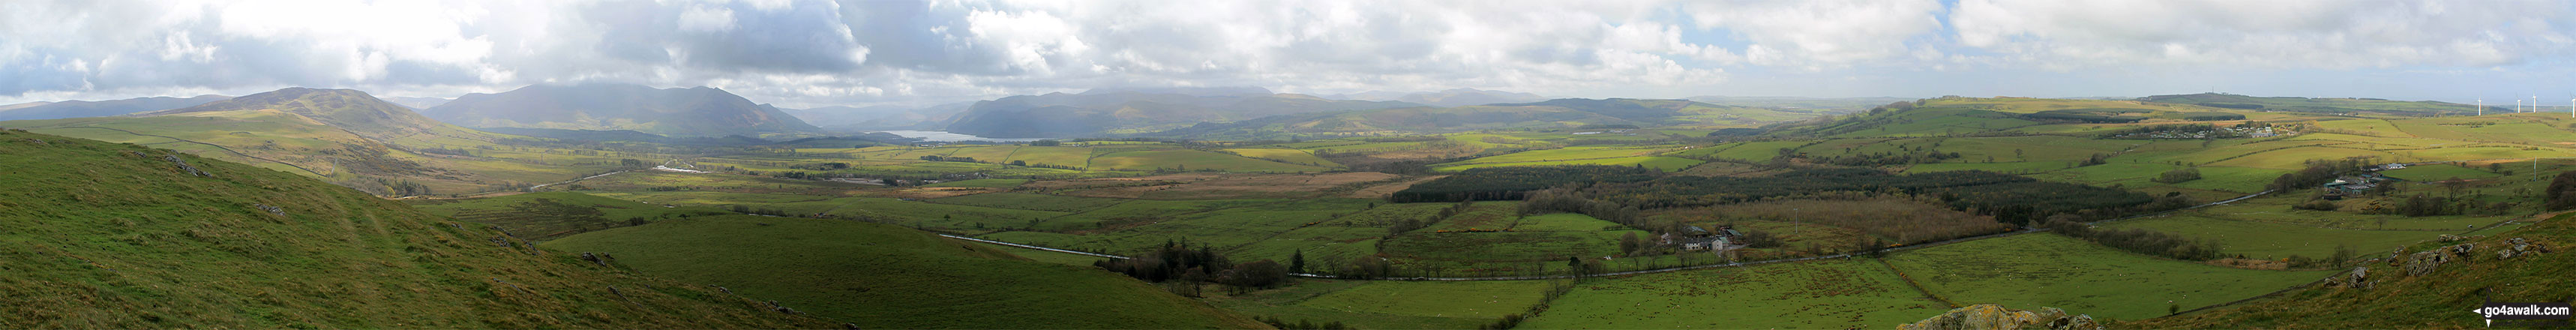 The Northern Fells (Binsey (left), Blencathra or Saddleback and Skiddaw), Bassenthwaite Lake and The North Western Fells (Sale Fell, Broom Fell, Lord's Seat and Barf) from the summit of Caermote Hill